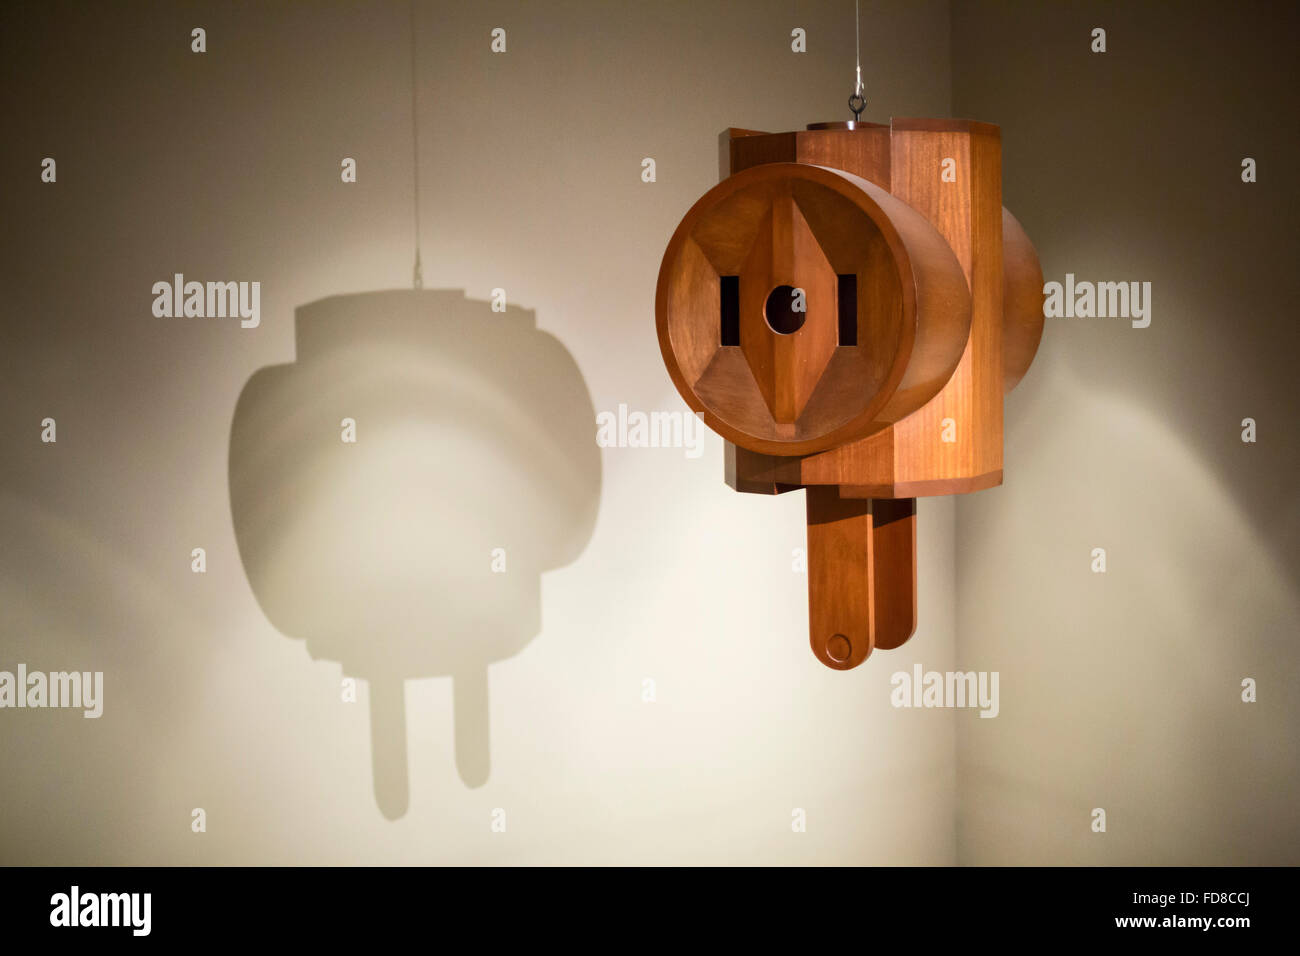 Detroit, Michigan - 'Giant Three-Way Plug' hangs from the ceiling at the Detroit Institute of Arts. Artist: - Stock Image